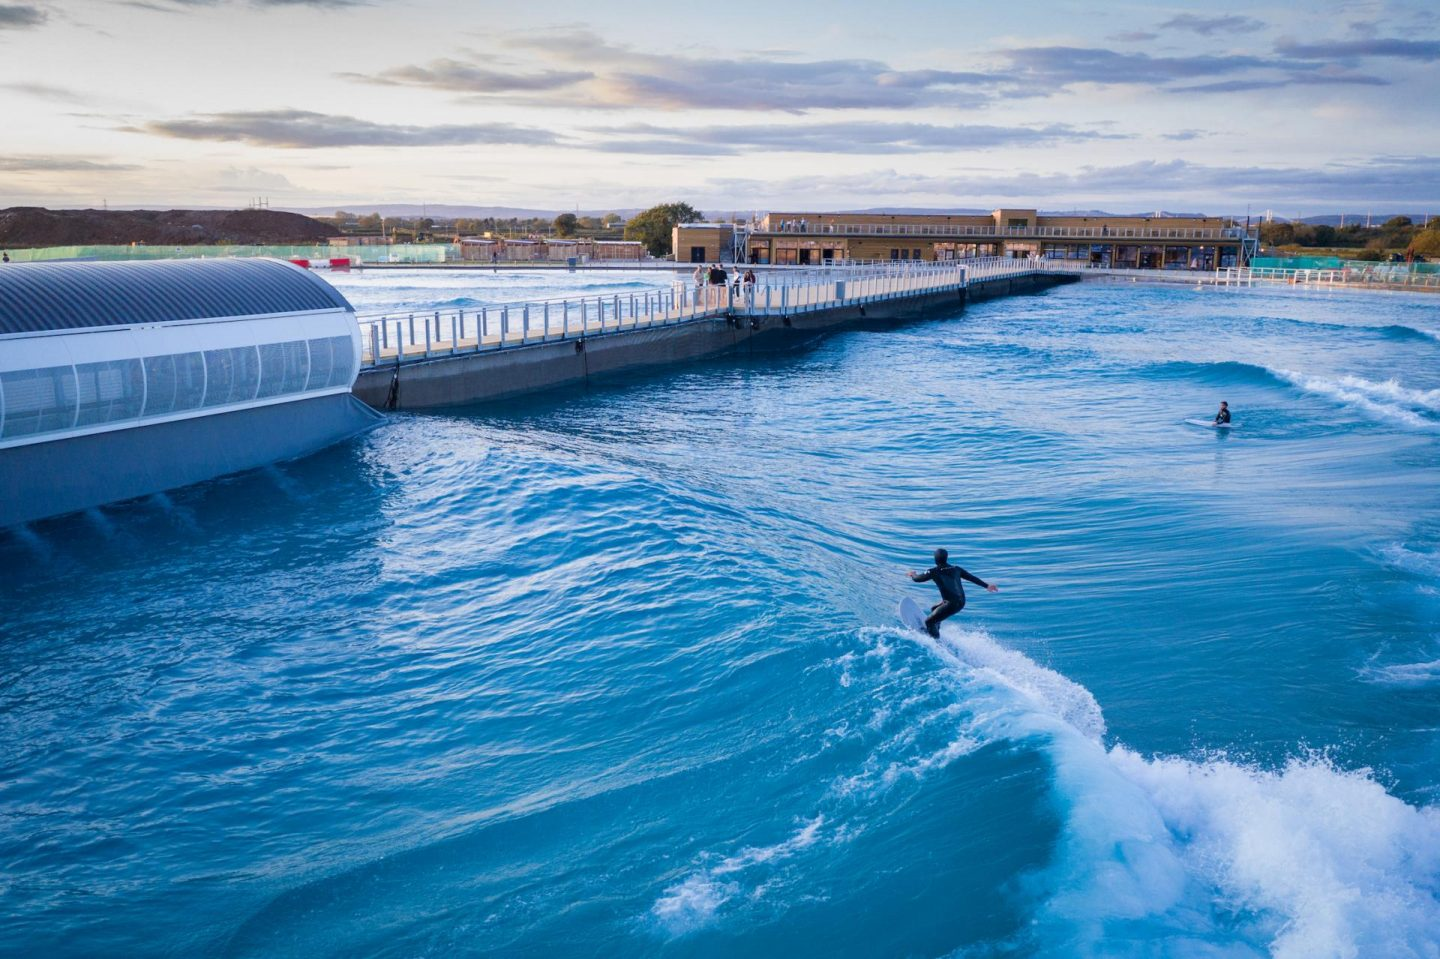 What it's like to surf The Wave, Bristol's artificial surf wave